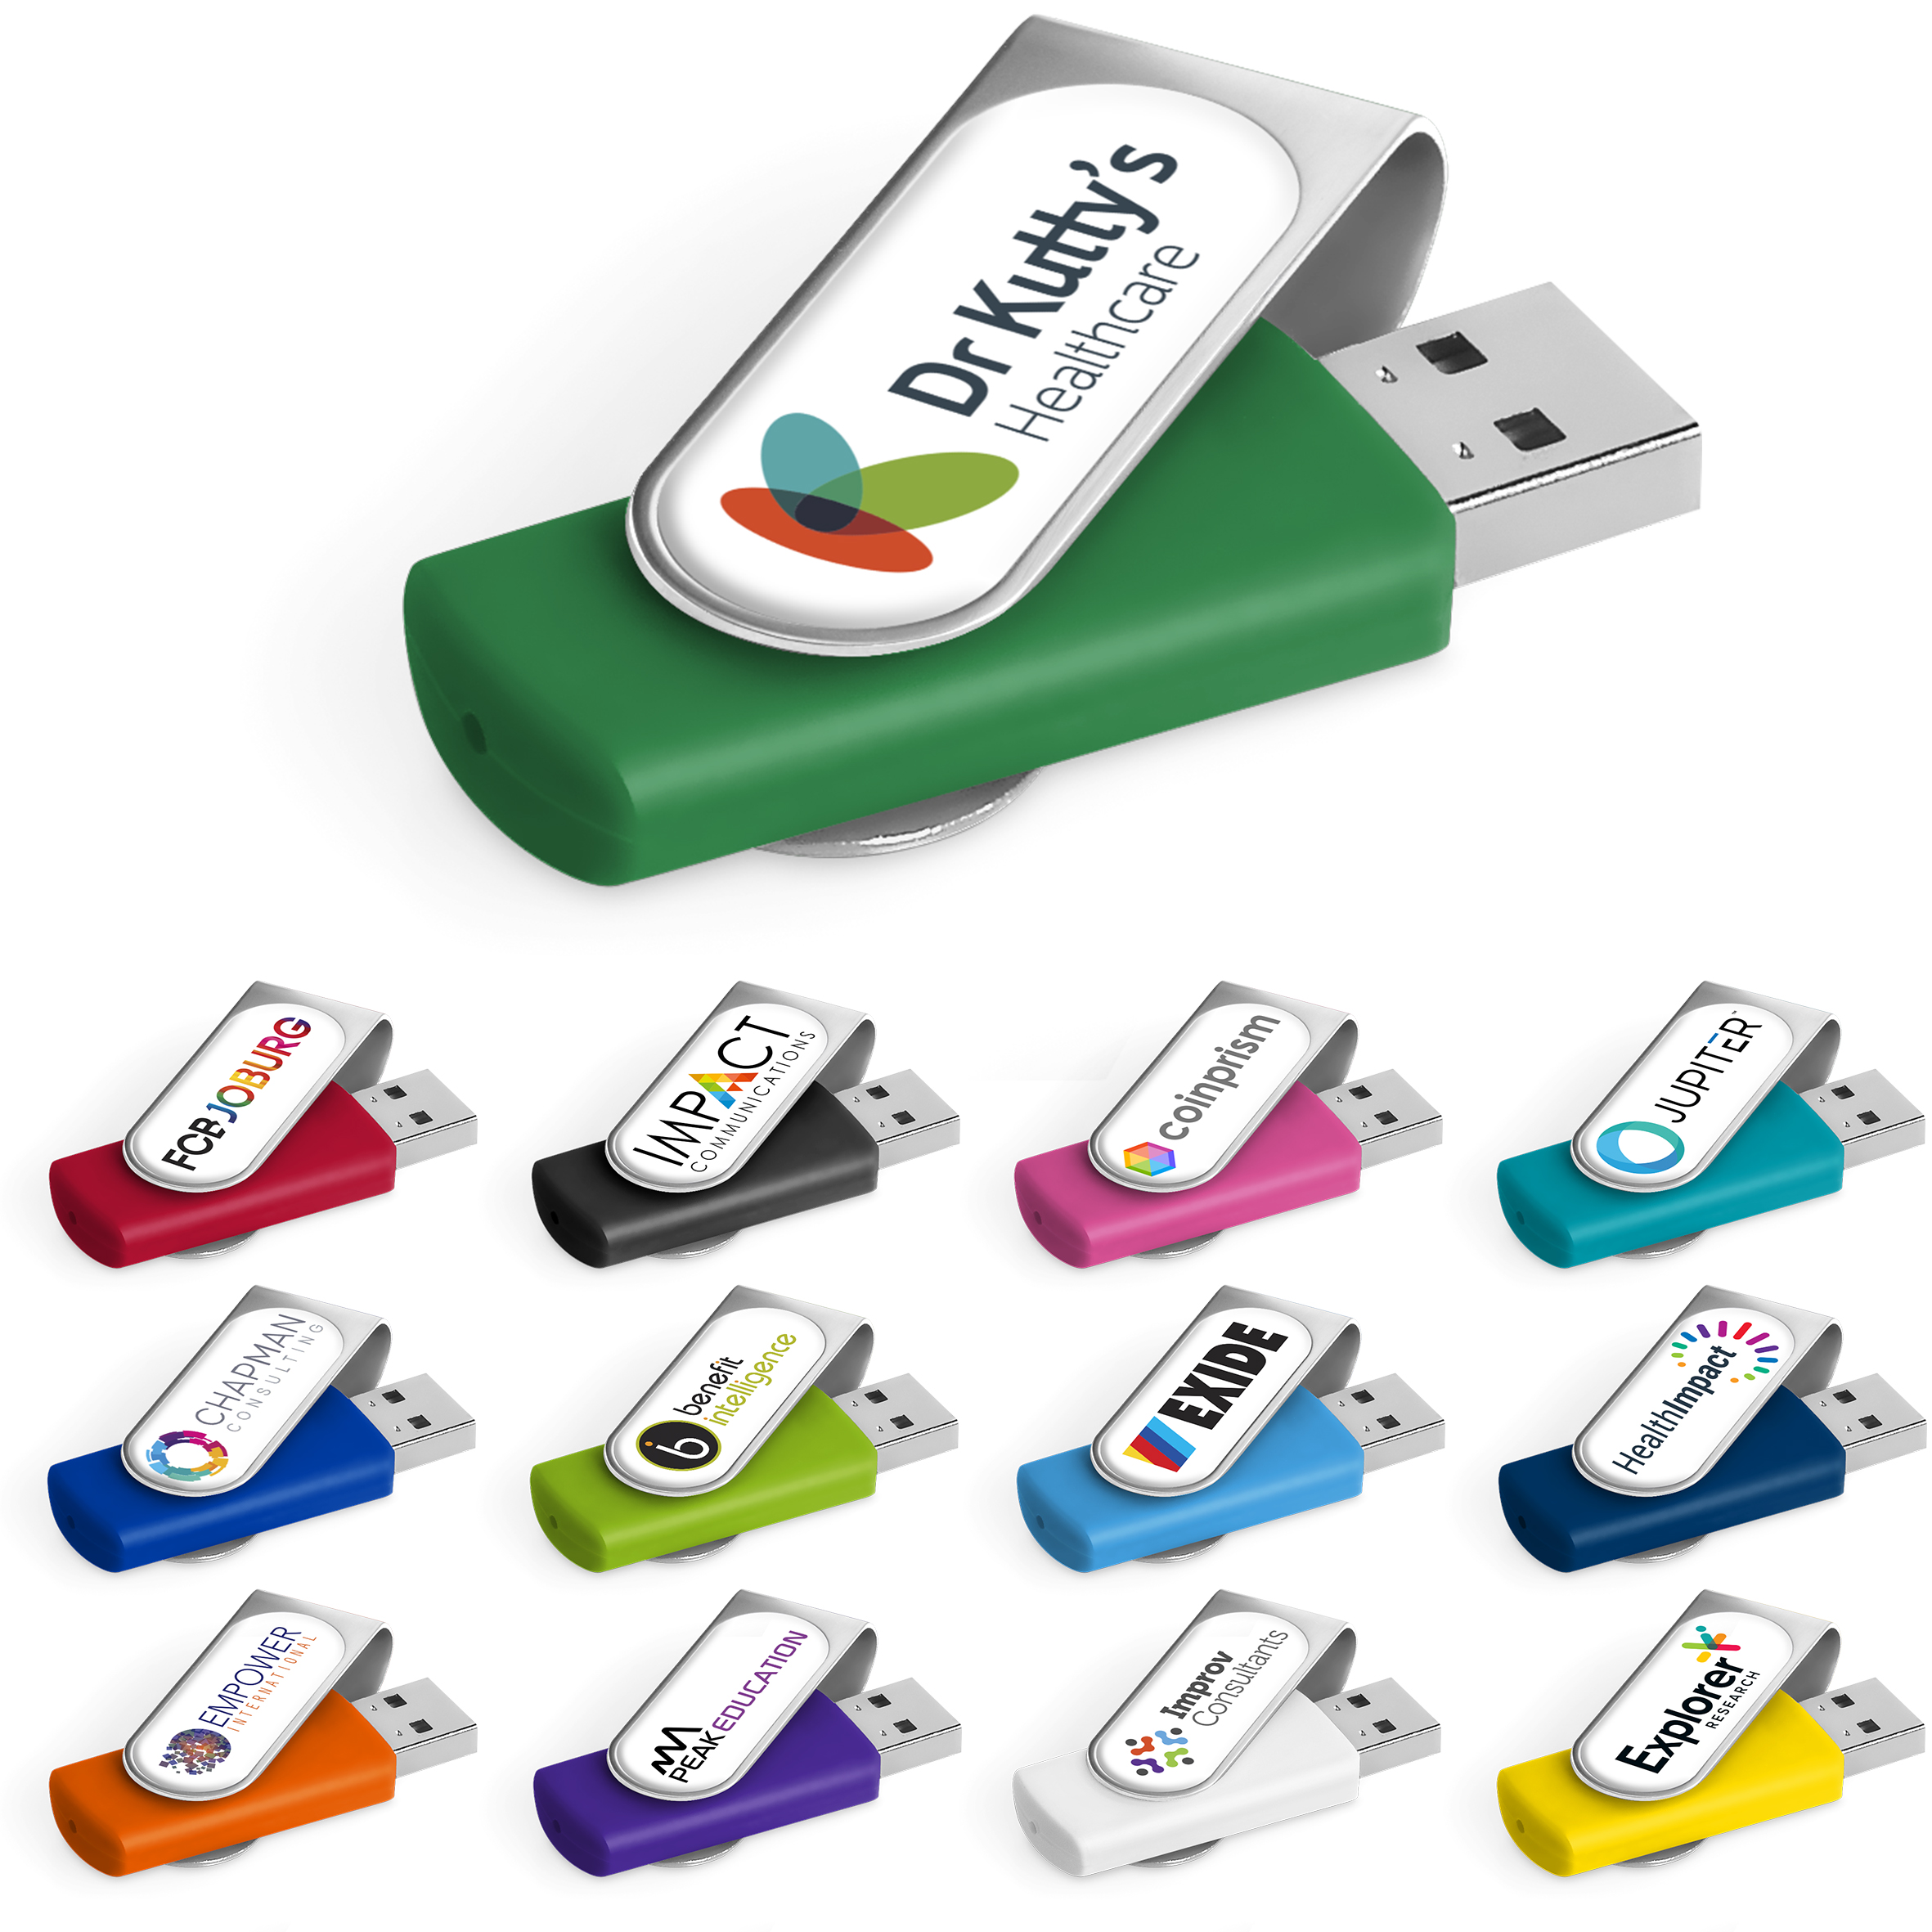 Axis Dome Memory Stick -  8GB